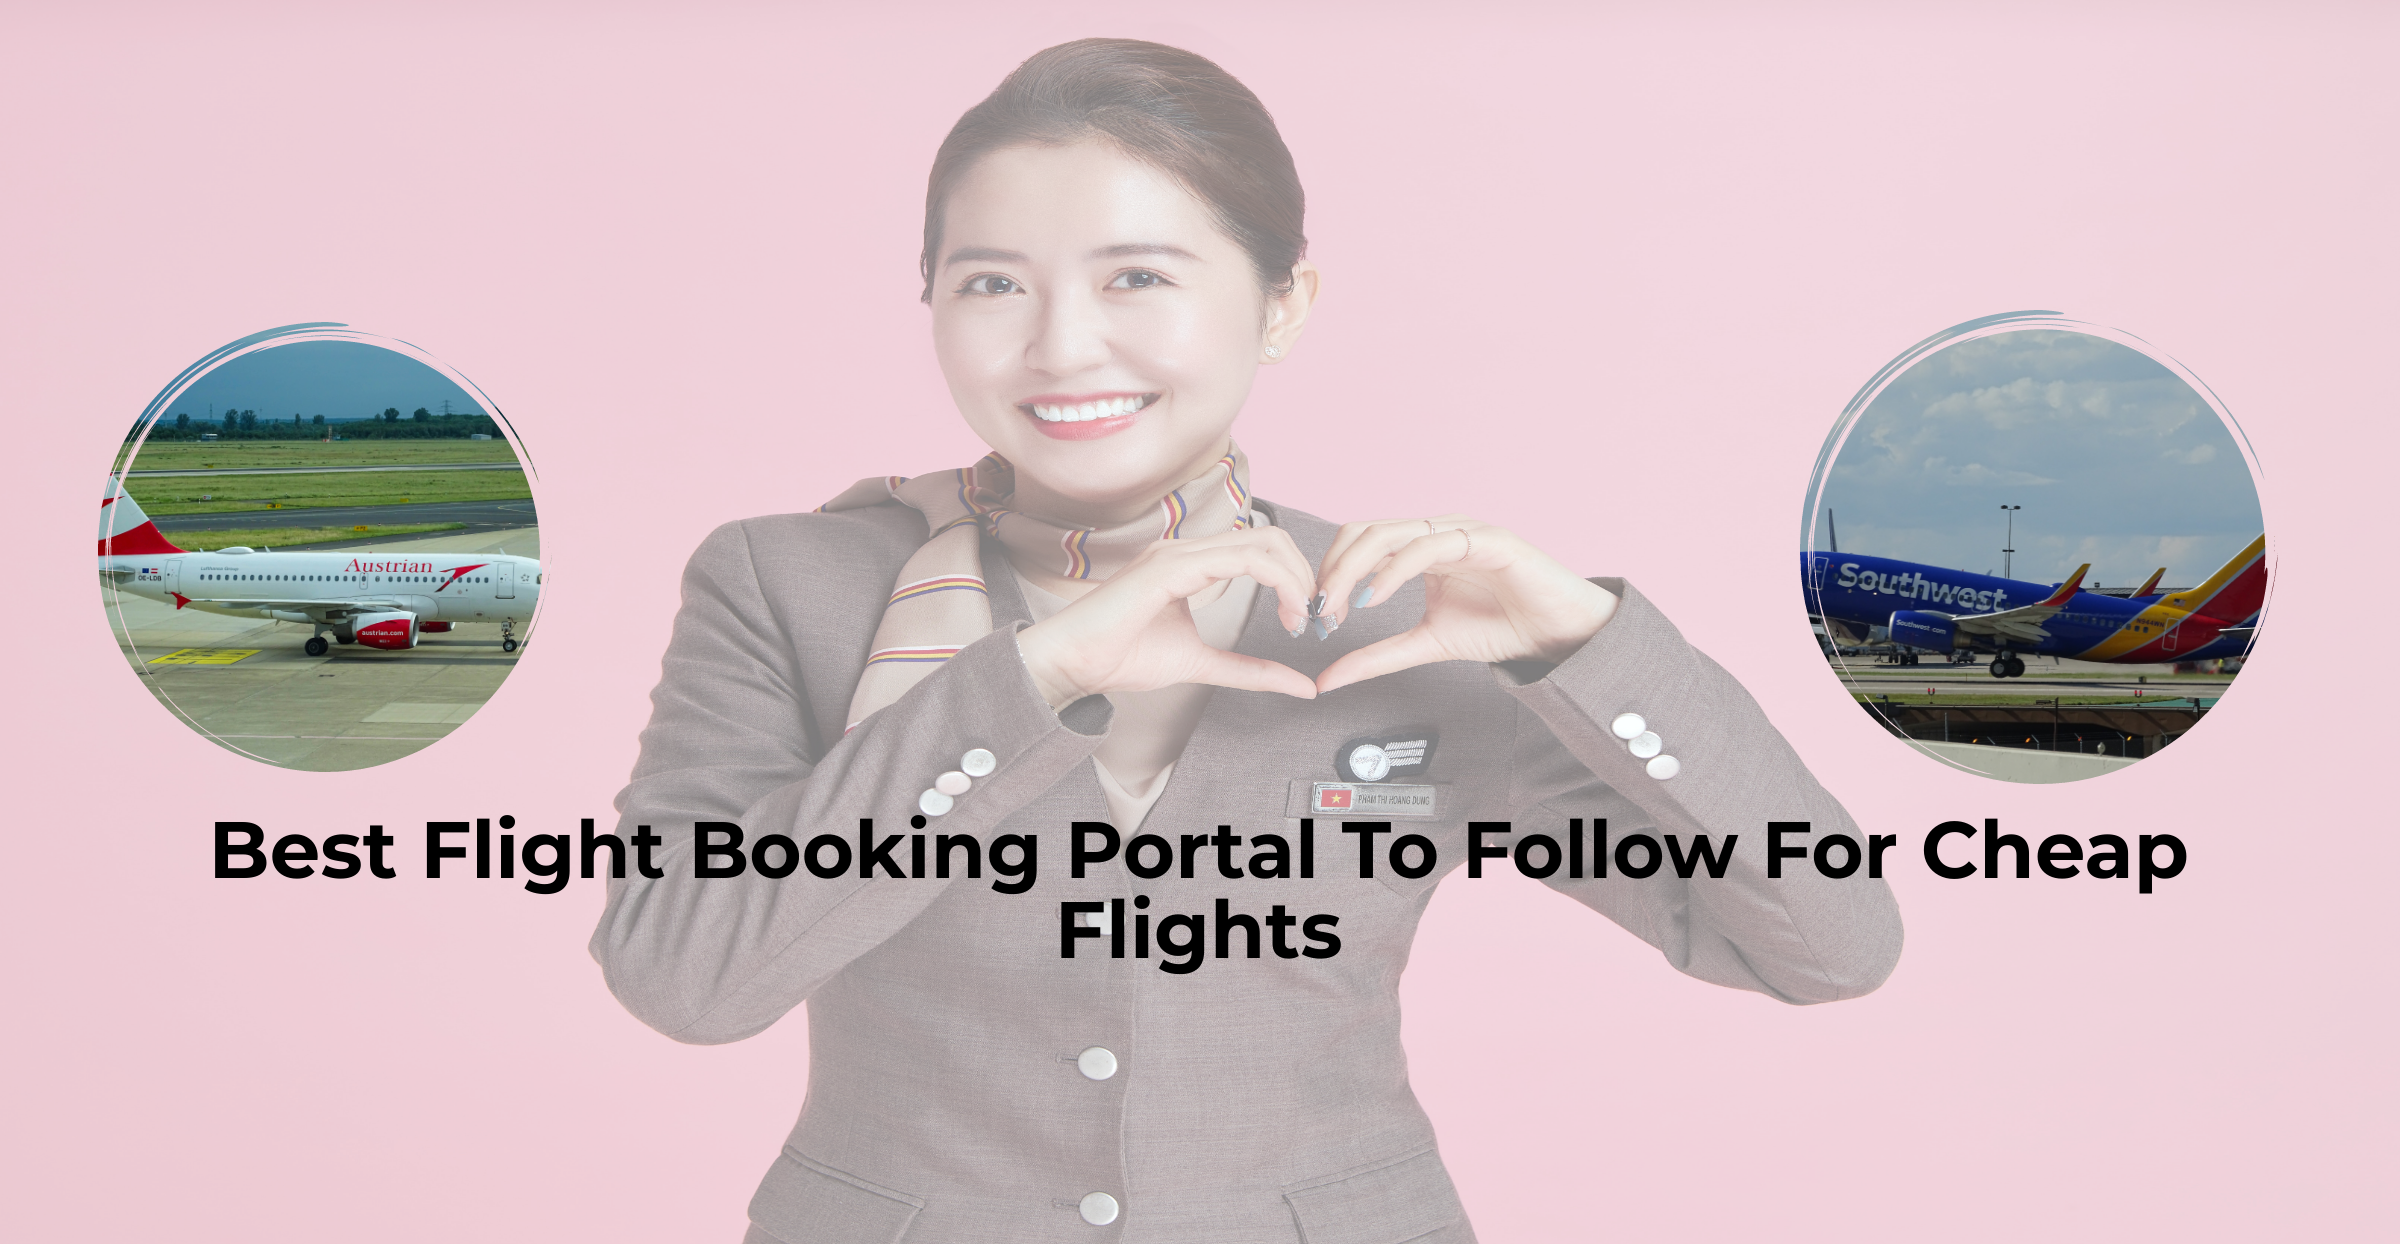 8 Of The Best Flight Booking Portal To Follow For Cheap Flights